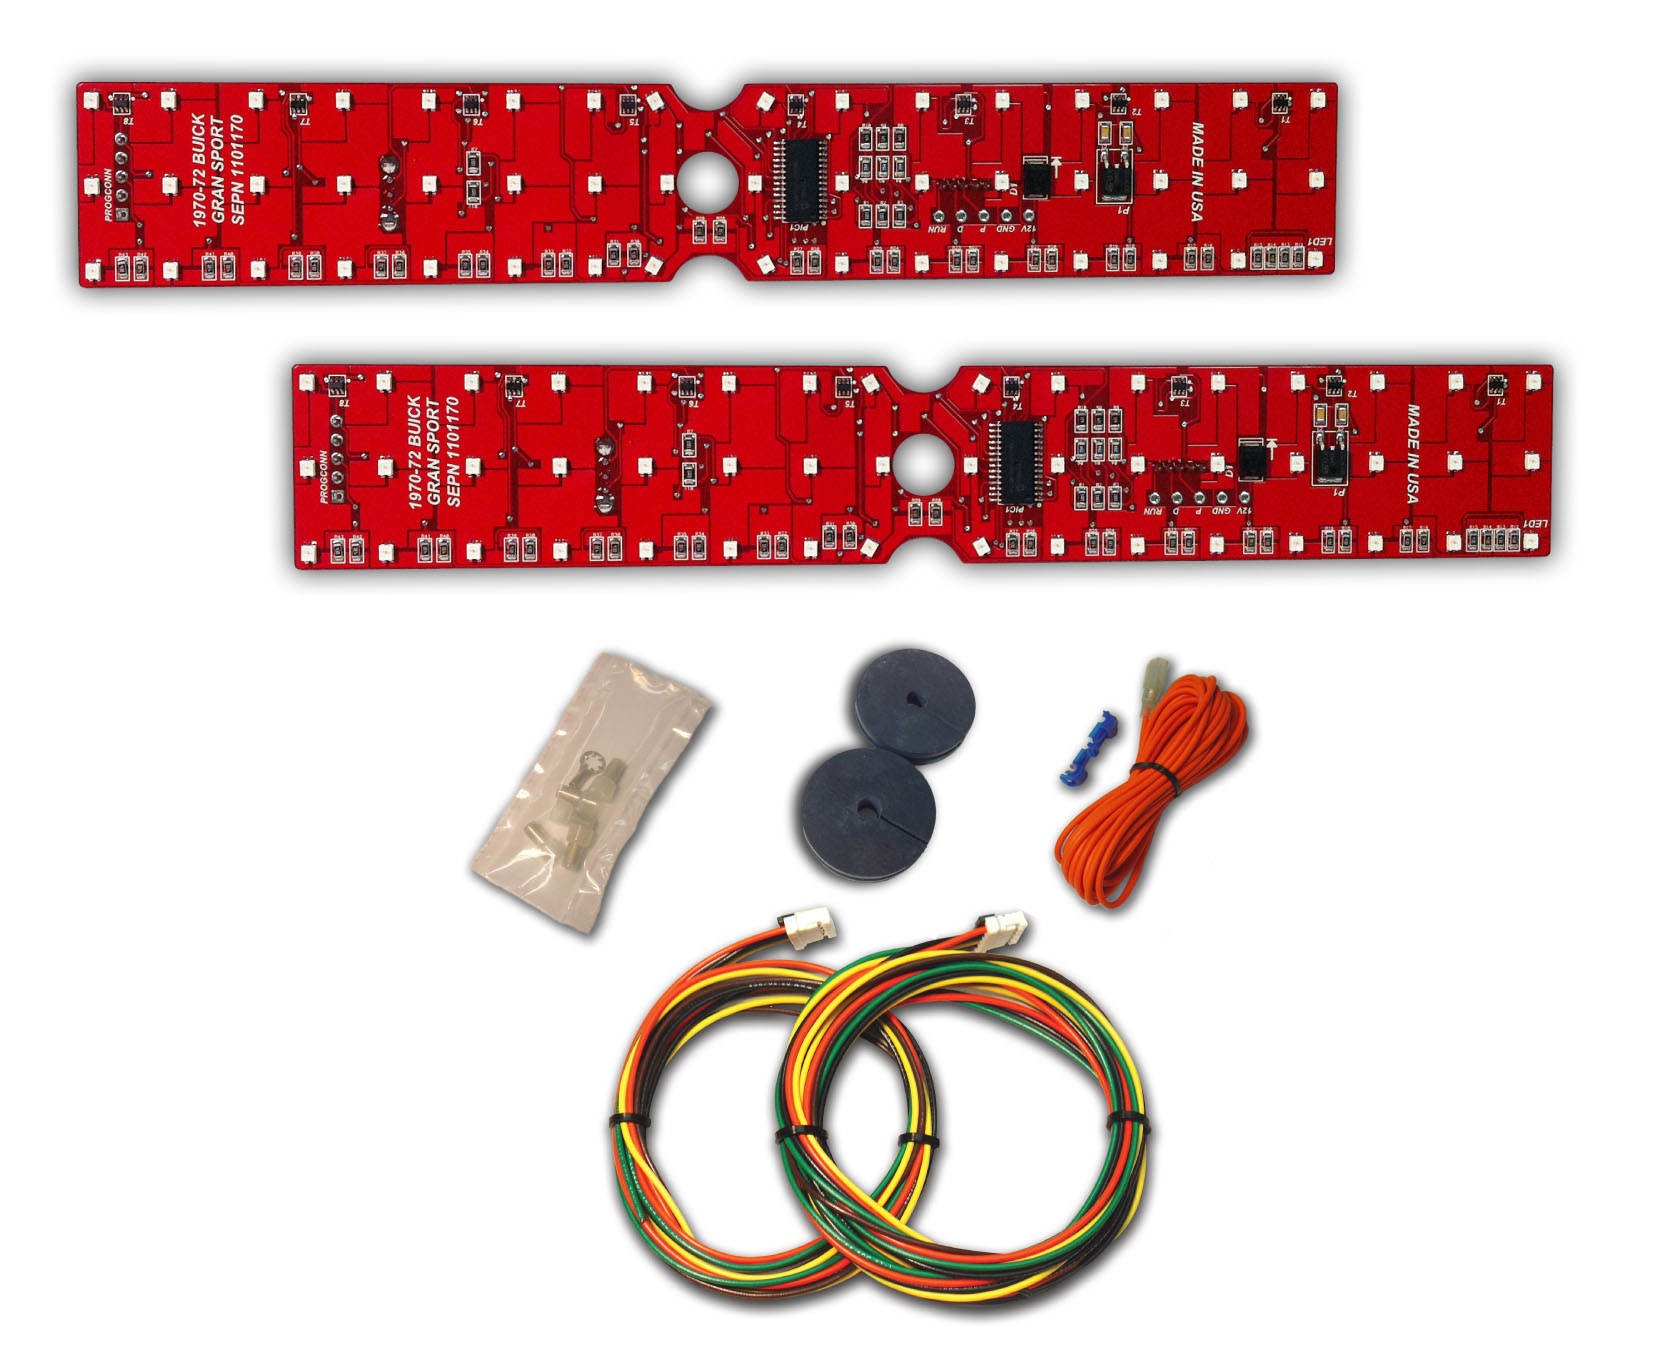 1968 1969 70 71 72 Buick Skylark Gs Gsx Electra Lesabre Wiring Gran Sport Diagram Trusted 1970 Nova Rear Lights Harness 1956